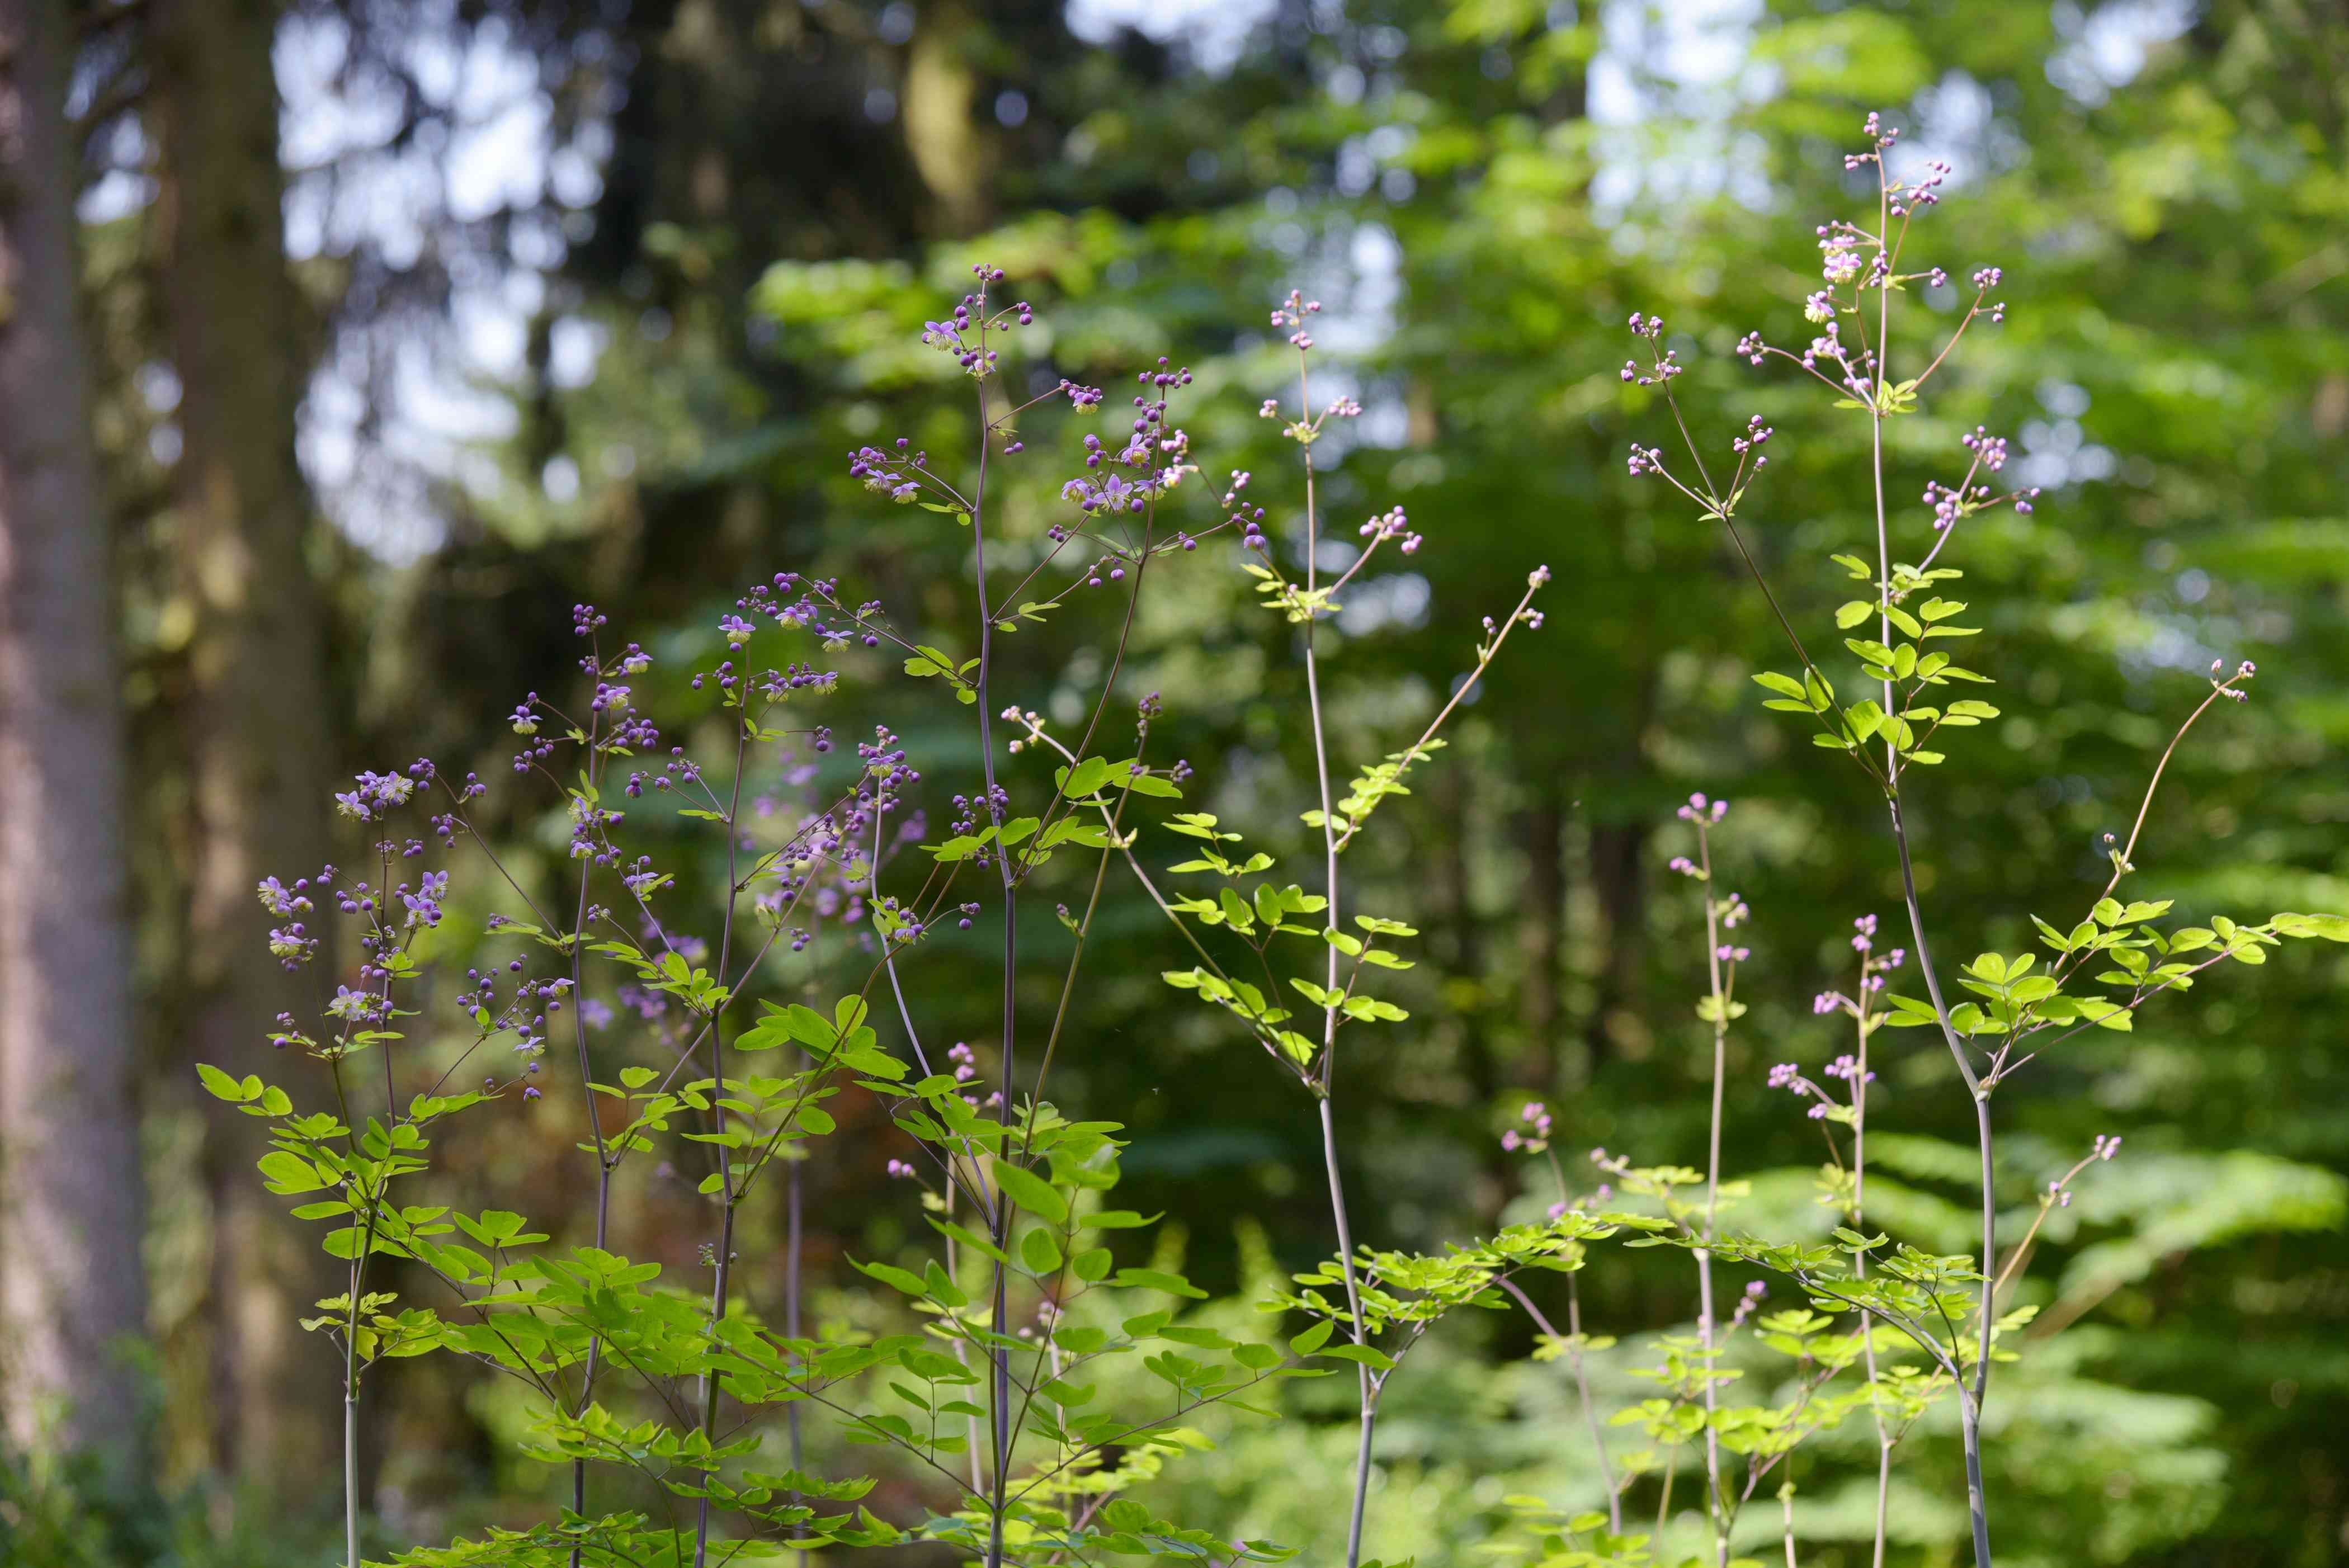 Meadow rue plant with thin stems and small bright green leaves and small purple flowers